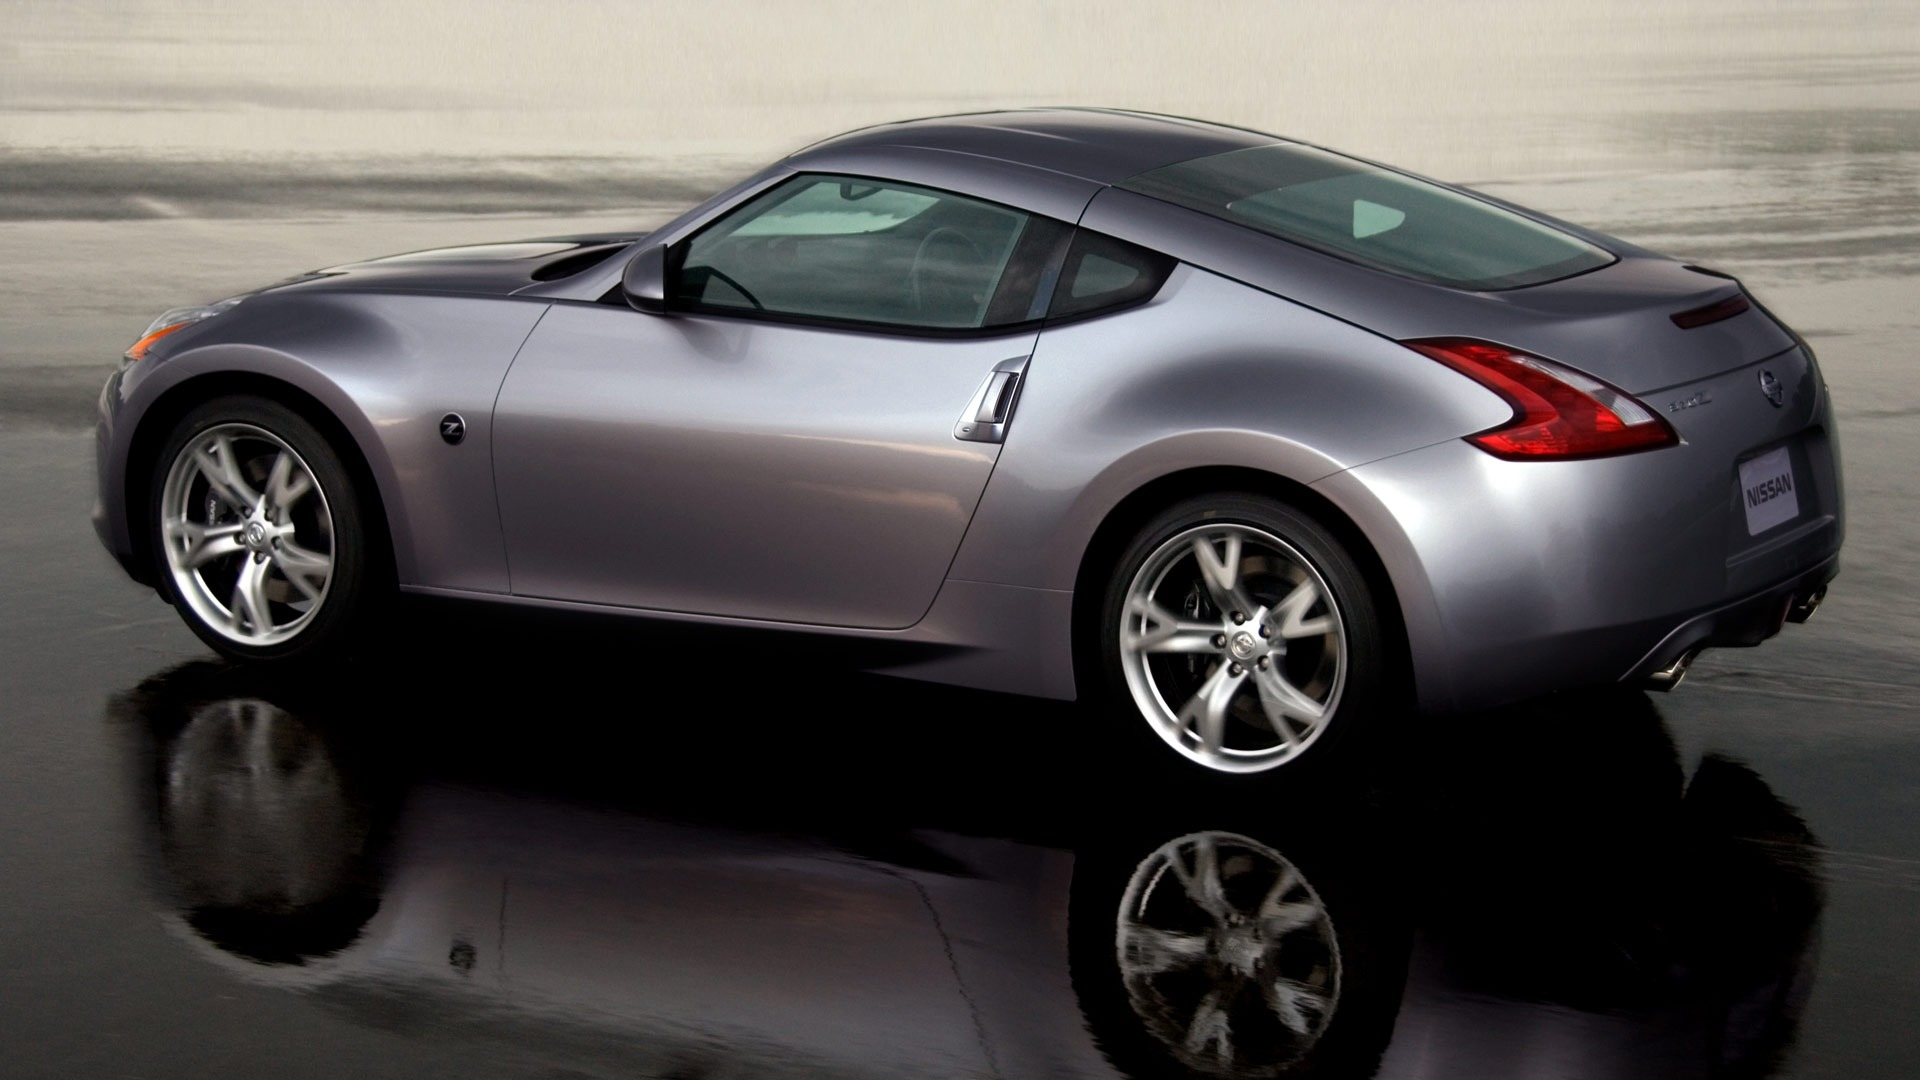 Nissan 370Z Wallpaper Nissan Cars Wallpapers in jpg format for free ...